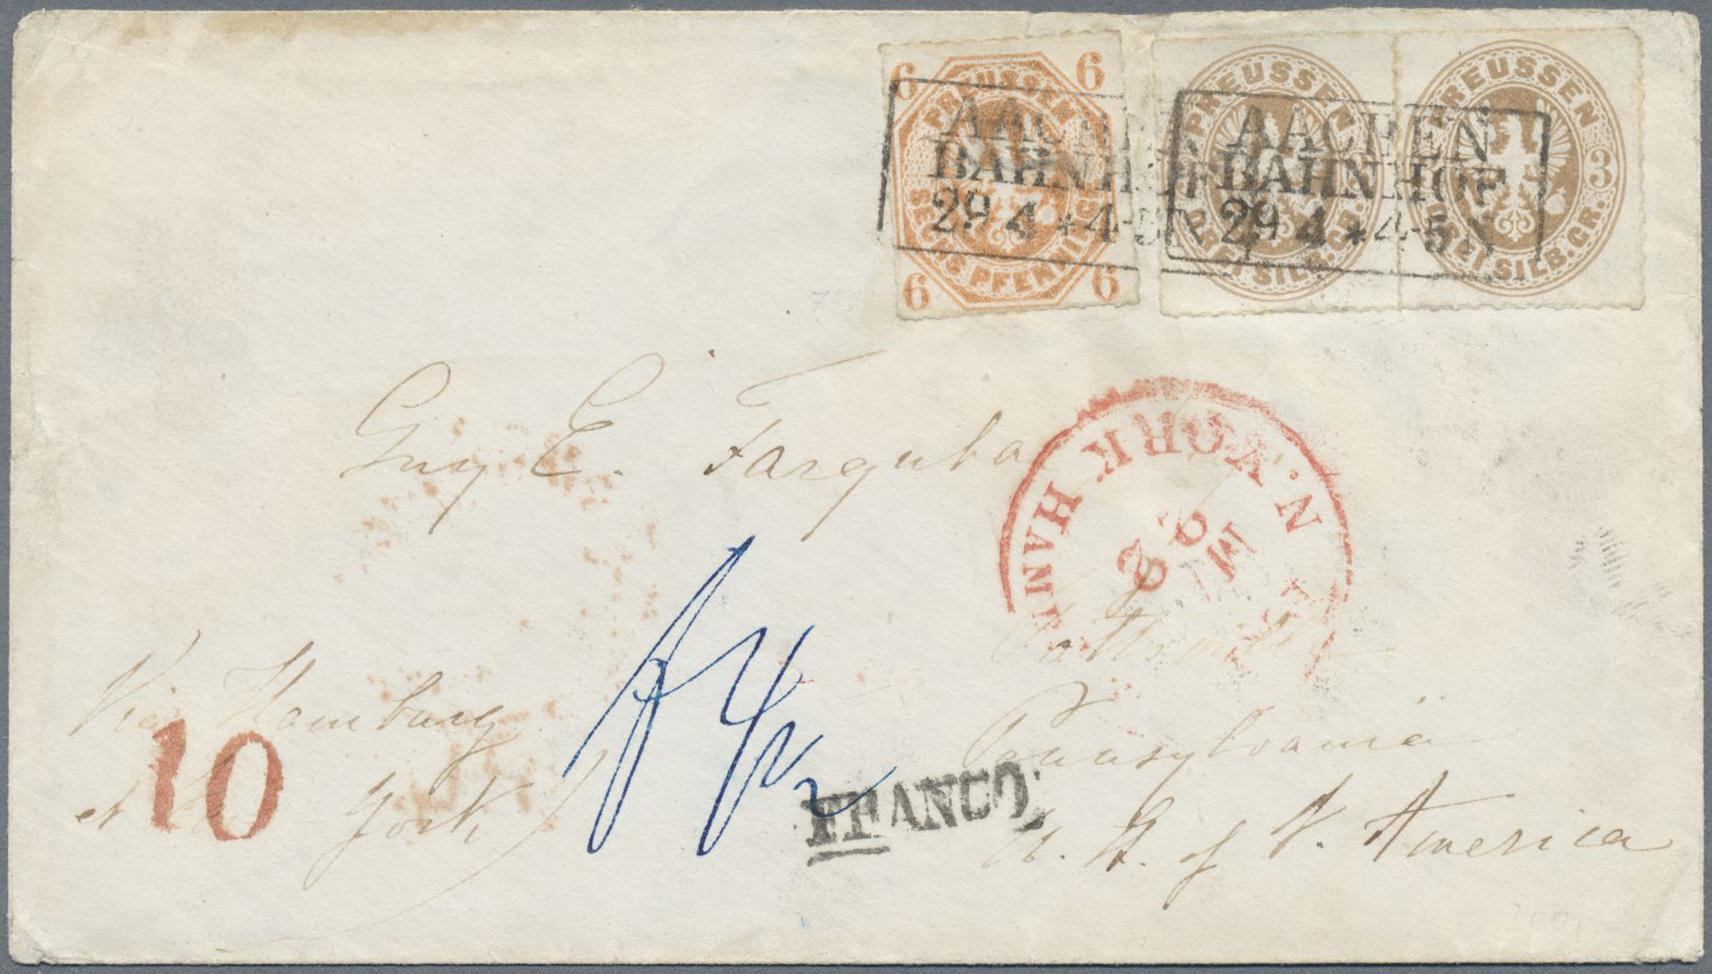 Lot 17406 - Preußen - Marken und Briefe  -  Auktionshaus Christoph Gärtner GmbH & Co. KG Auction #40 Germany, Picture Post Cards, Collections Overseas, Thematics